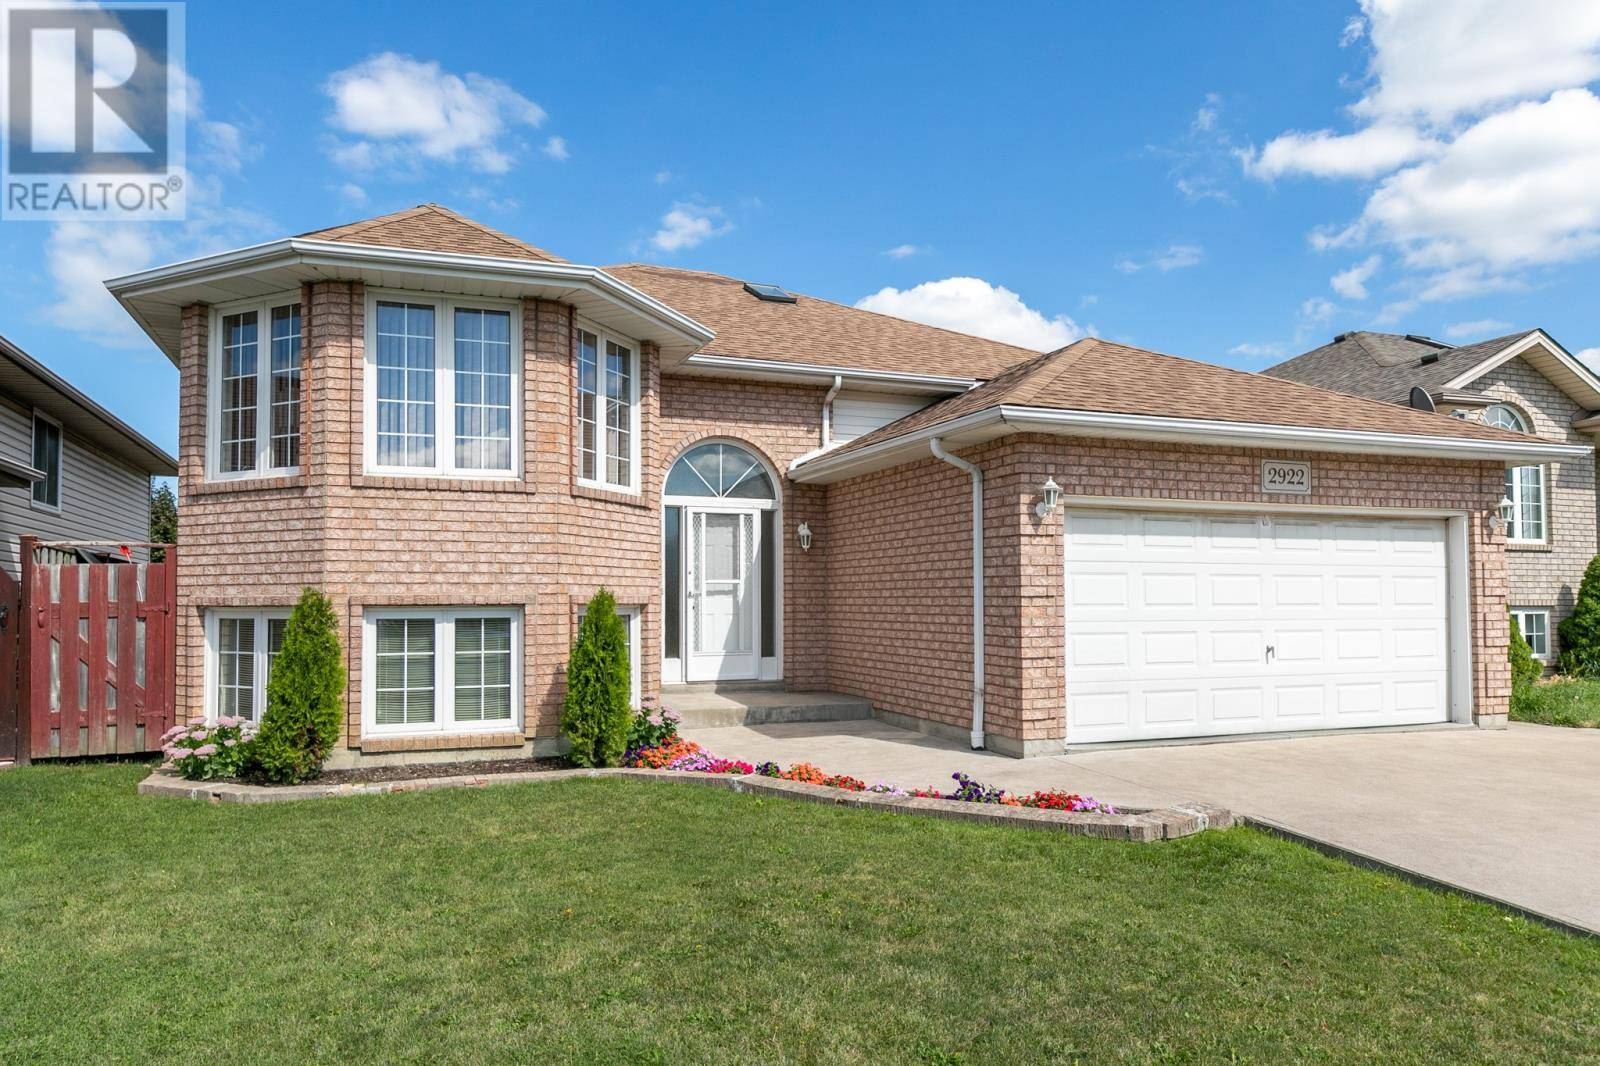 House for sale at 2922 Ruth Rd Windsor Ontario - MLS: 19026870